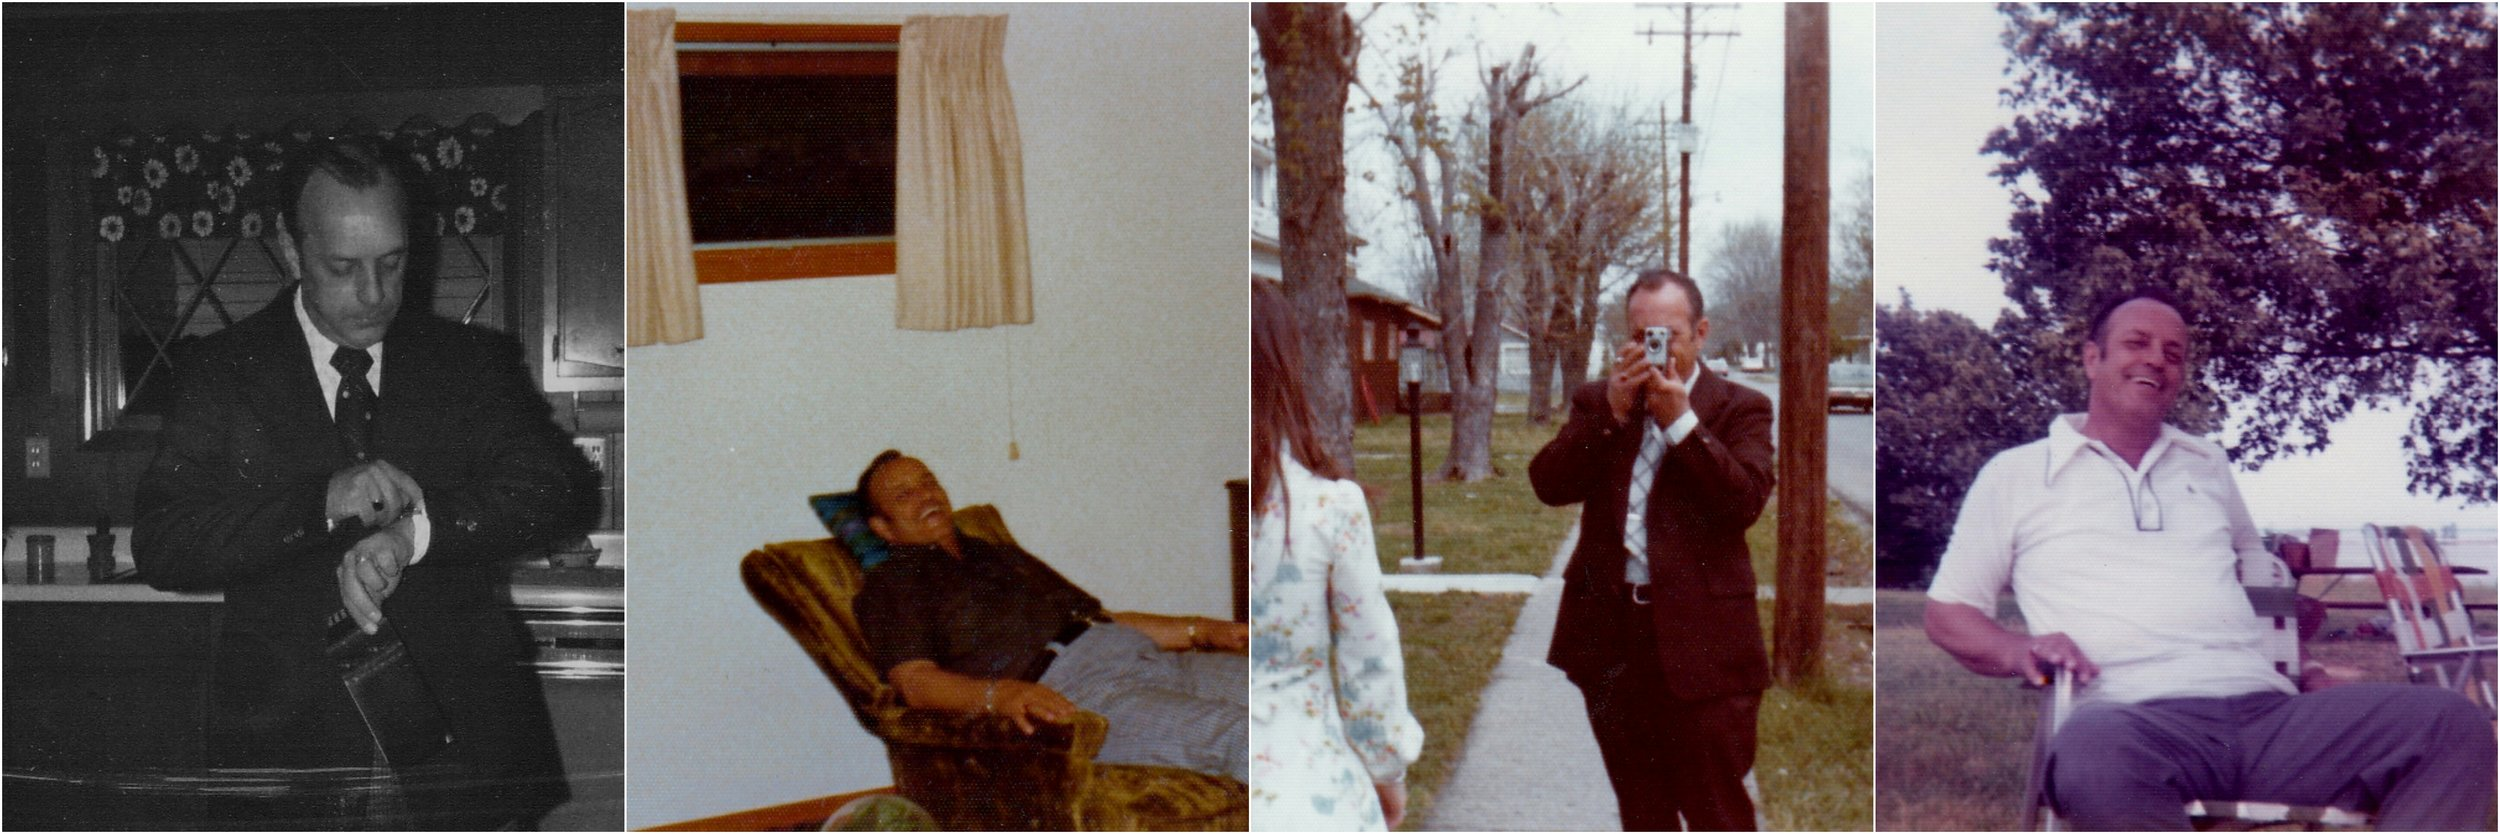 Four things I remember when I think about my Dad: how he was always on time or early; how he enjoyed his first La-Z-Boy recliner; how he documented our lives with his movie camera; how he listened to Cardinal baseball games on the radio while sitting in our backyard.